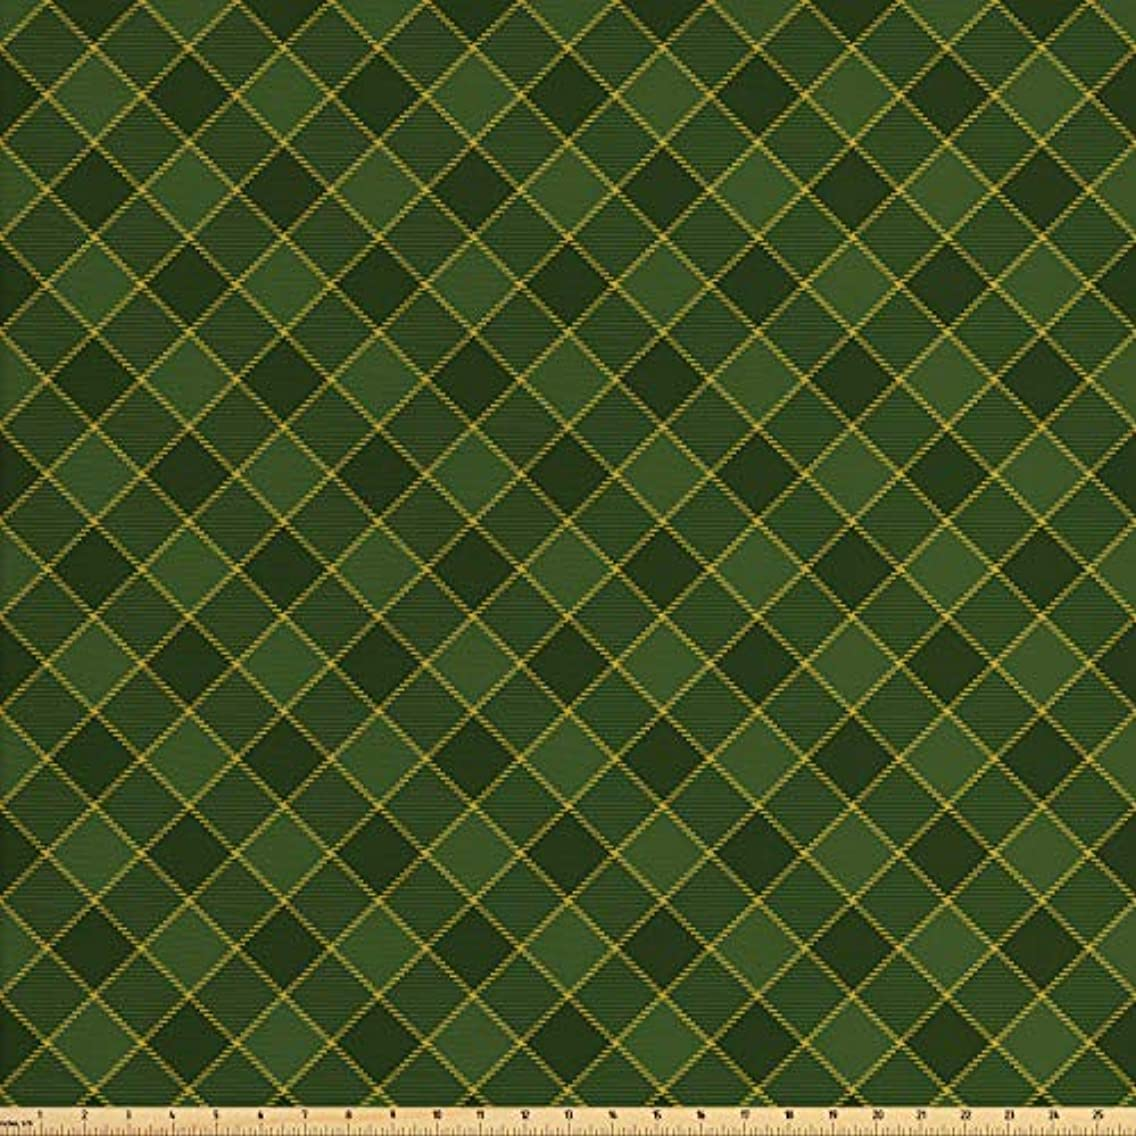 Lunarable Green Fabric by The Yard, Traditional Old Fashioned Argyle Pattern Retro Style Plaid, Decorative Fabric for Upholstery and Home Accents, 2 Yards, Hunter Green Forrest Green Yellow